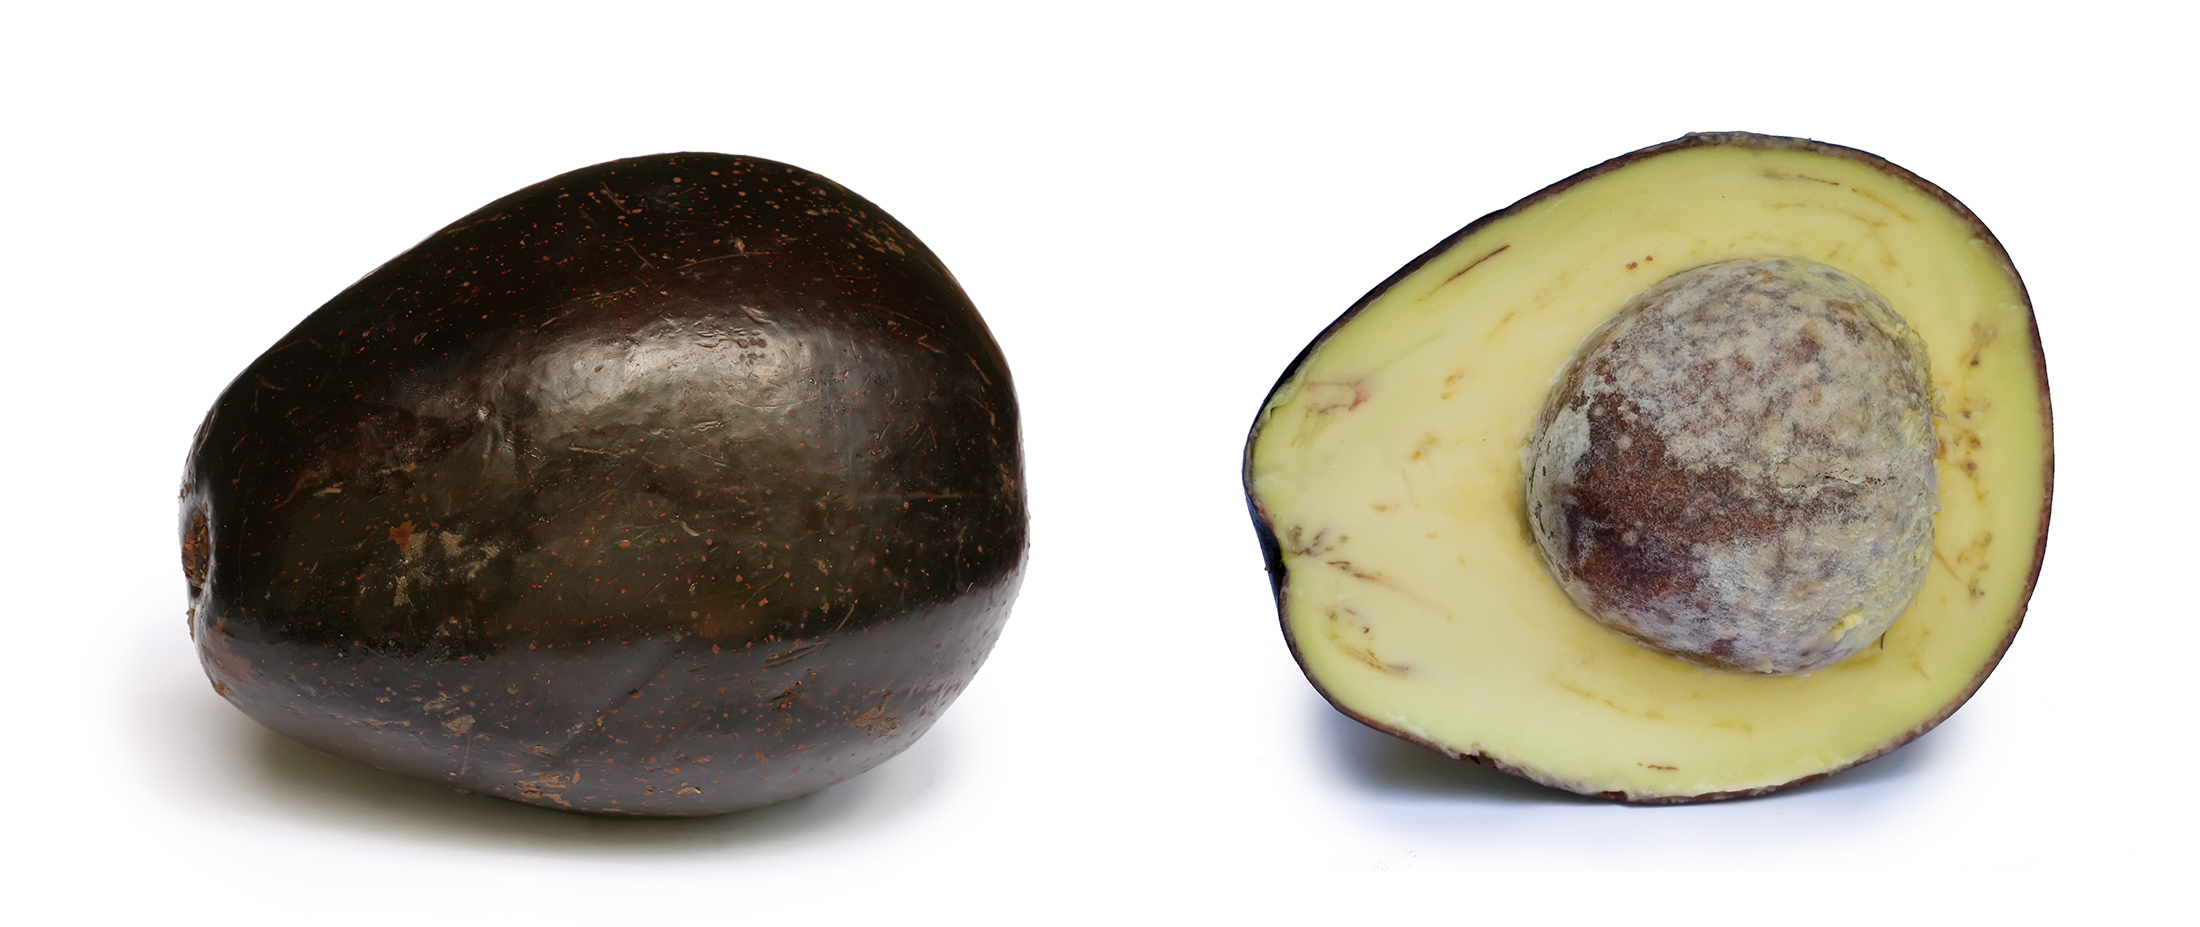 File:Avocado with cross section.jpg - Wikipedia, the free encyclopedia